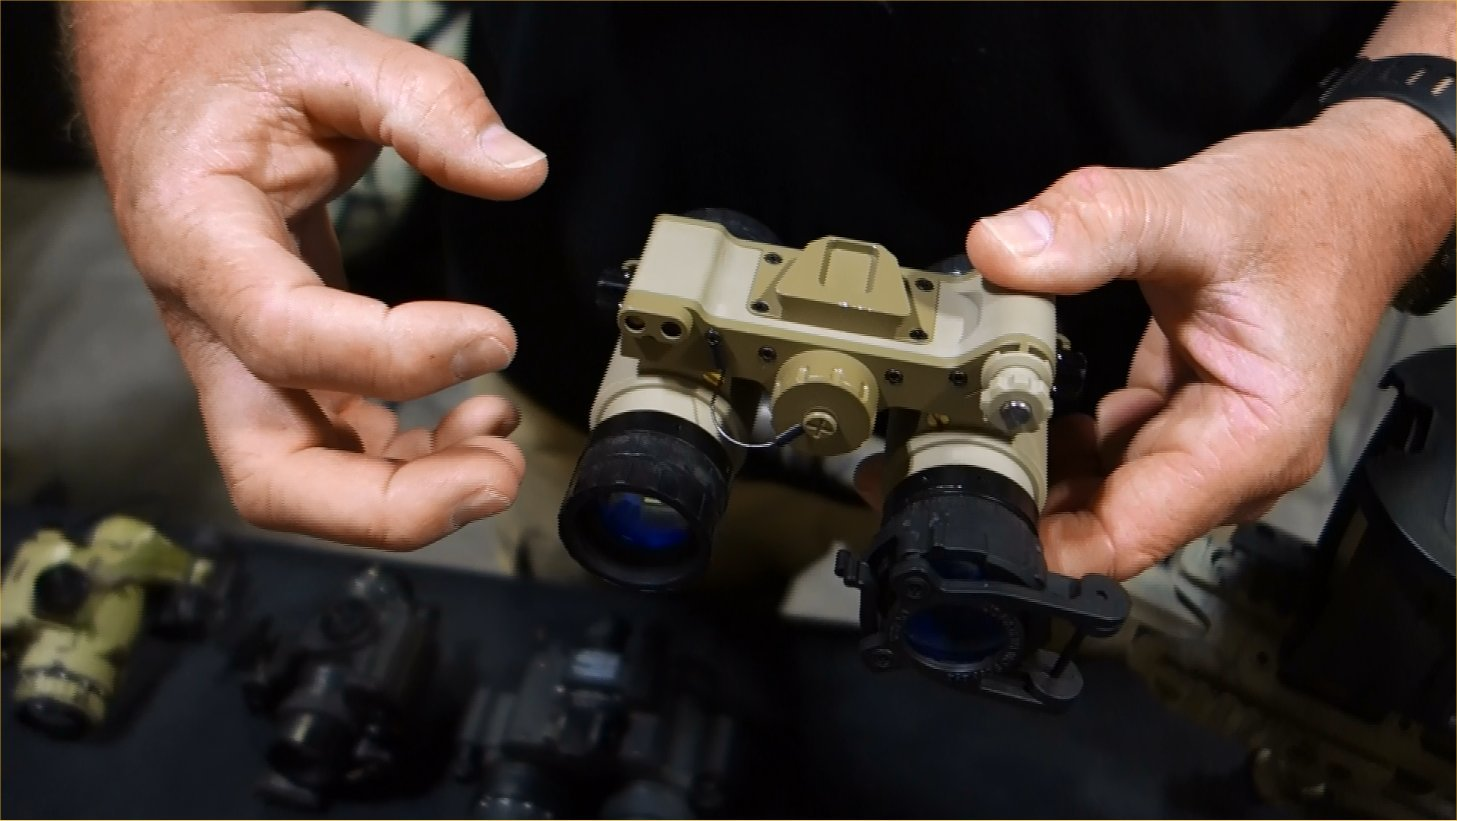 Tactical Night Vision Company TNVC Sentinel Ruggedized Night Vision Goggle NVG Retrofitted and Ruggedized AN AVS 6 AN AVS 9 NVG Kyle Harth NDIA SOFIC 2013 David Crane DefenseReview.com DR 3 Adams Industries (AI)/Tactical Night Vision Company TNVC Sentinel Night Vision Goggle (NVG)/Imaging System: Up Armored AN/AVS 6/9 (ANVIS 6/9) NVG for Military Special Operations Forces (SOF) (Video!)